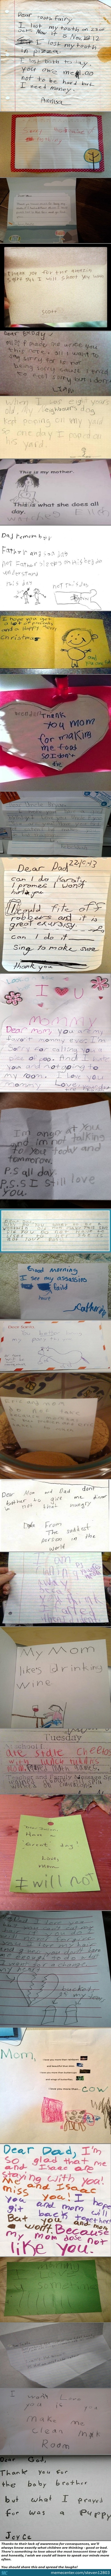 Kids Write The Dardenest Things...